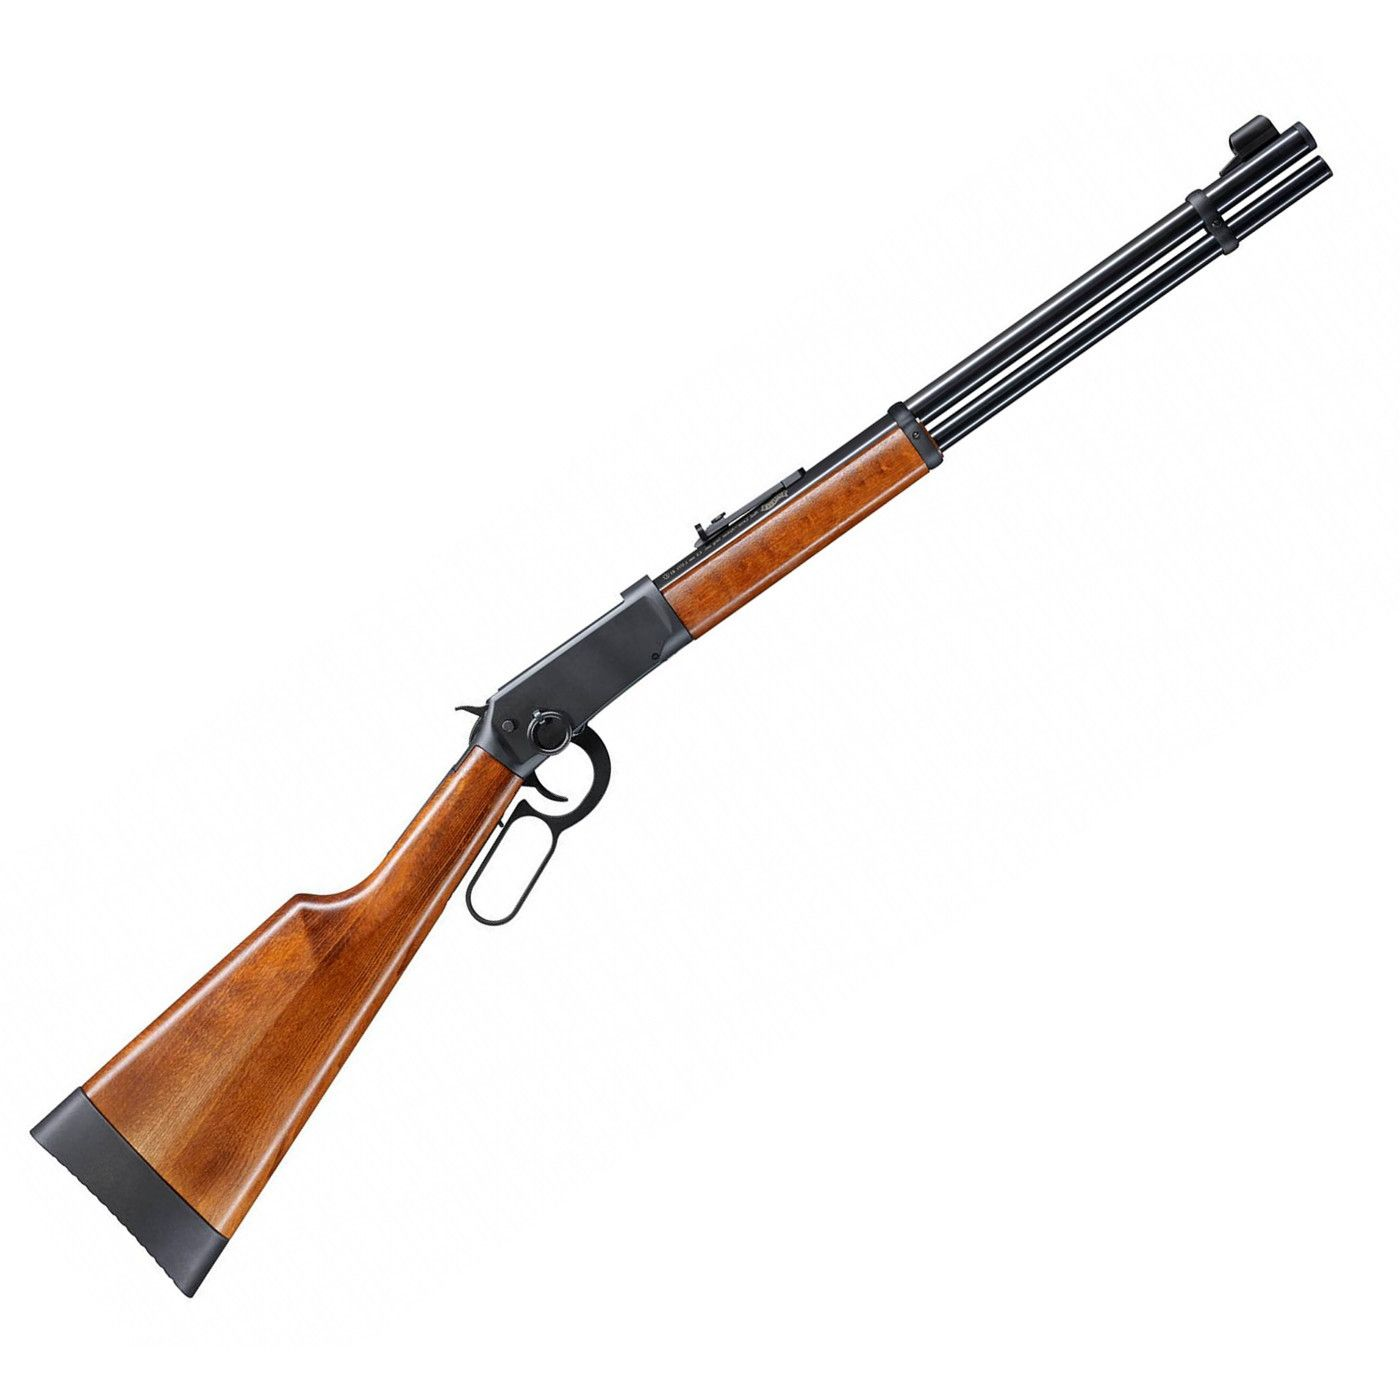 Carabina de CO2 Walther Lever Action Calibre 4,5mm Oxidada + Cilindro CO2 88g